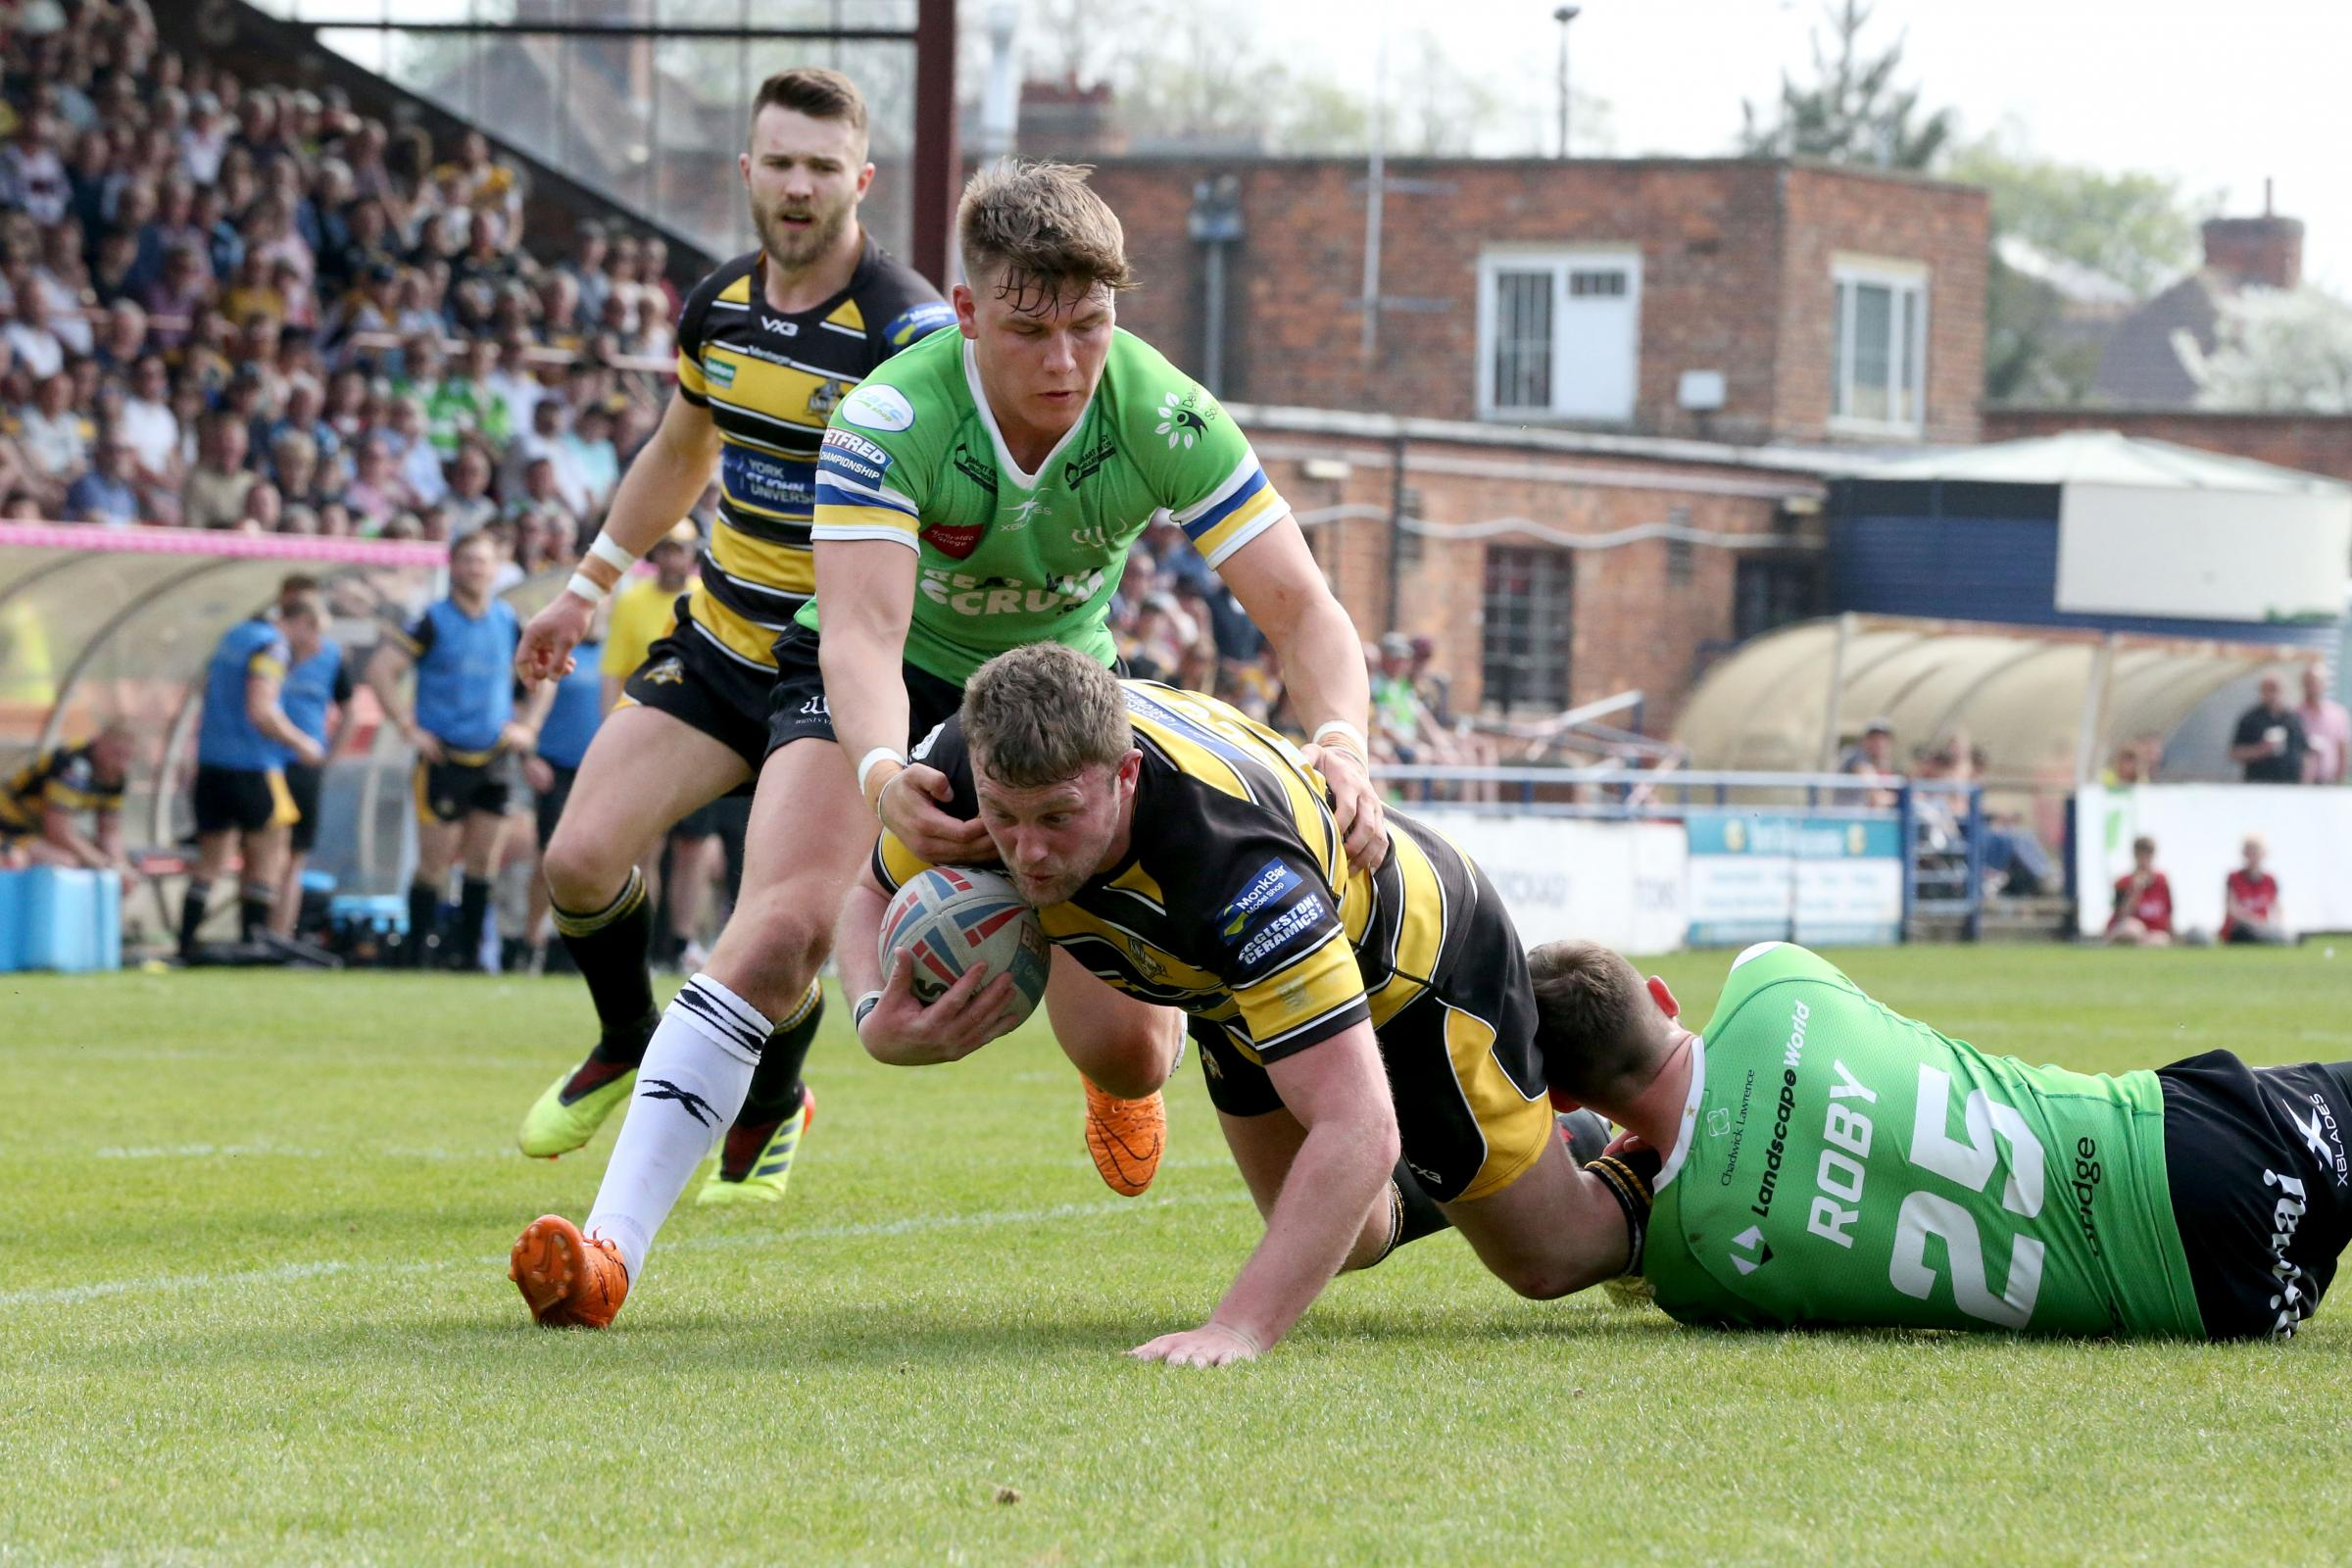 CROCKED: York City Knights second-row Sam Scott, who is likely to be sidelined for a month with a knee ligament injury. Picture: Gordon Clayton